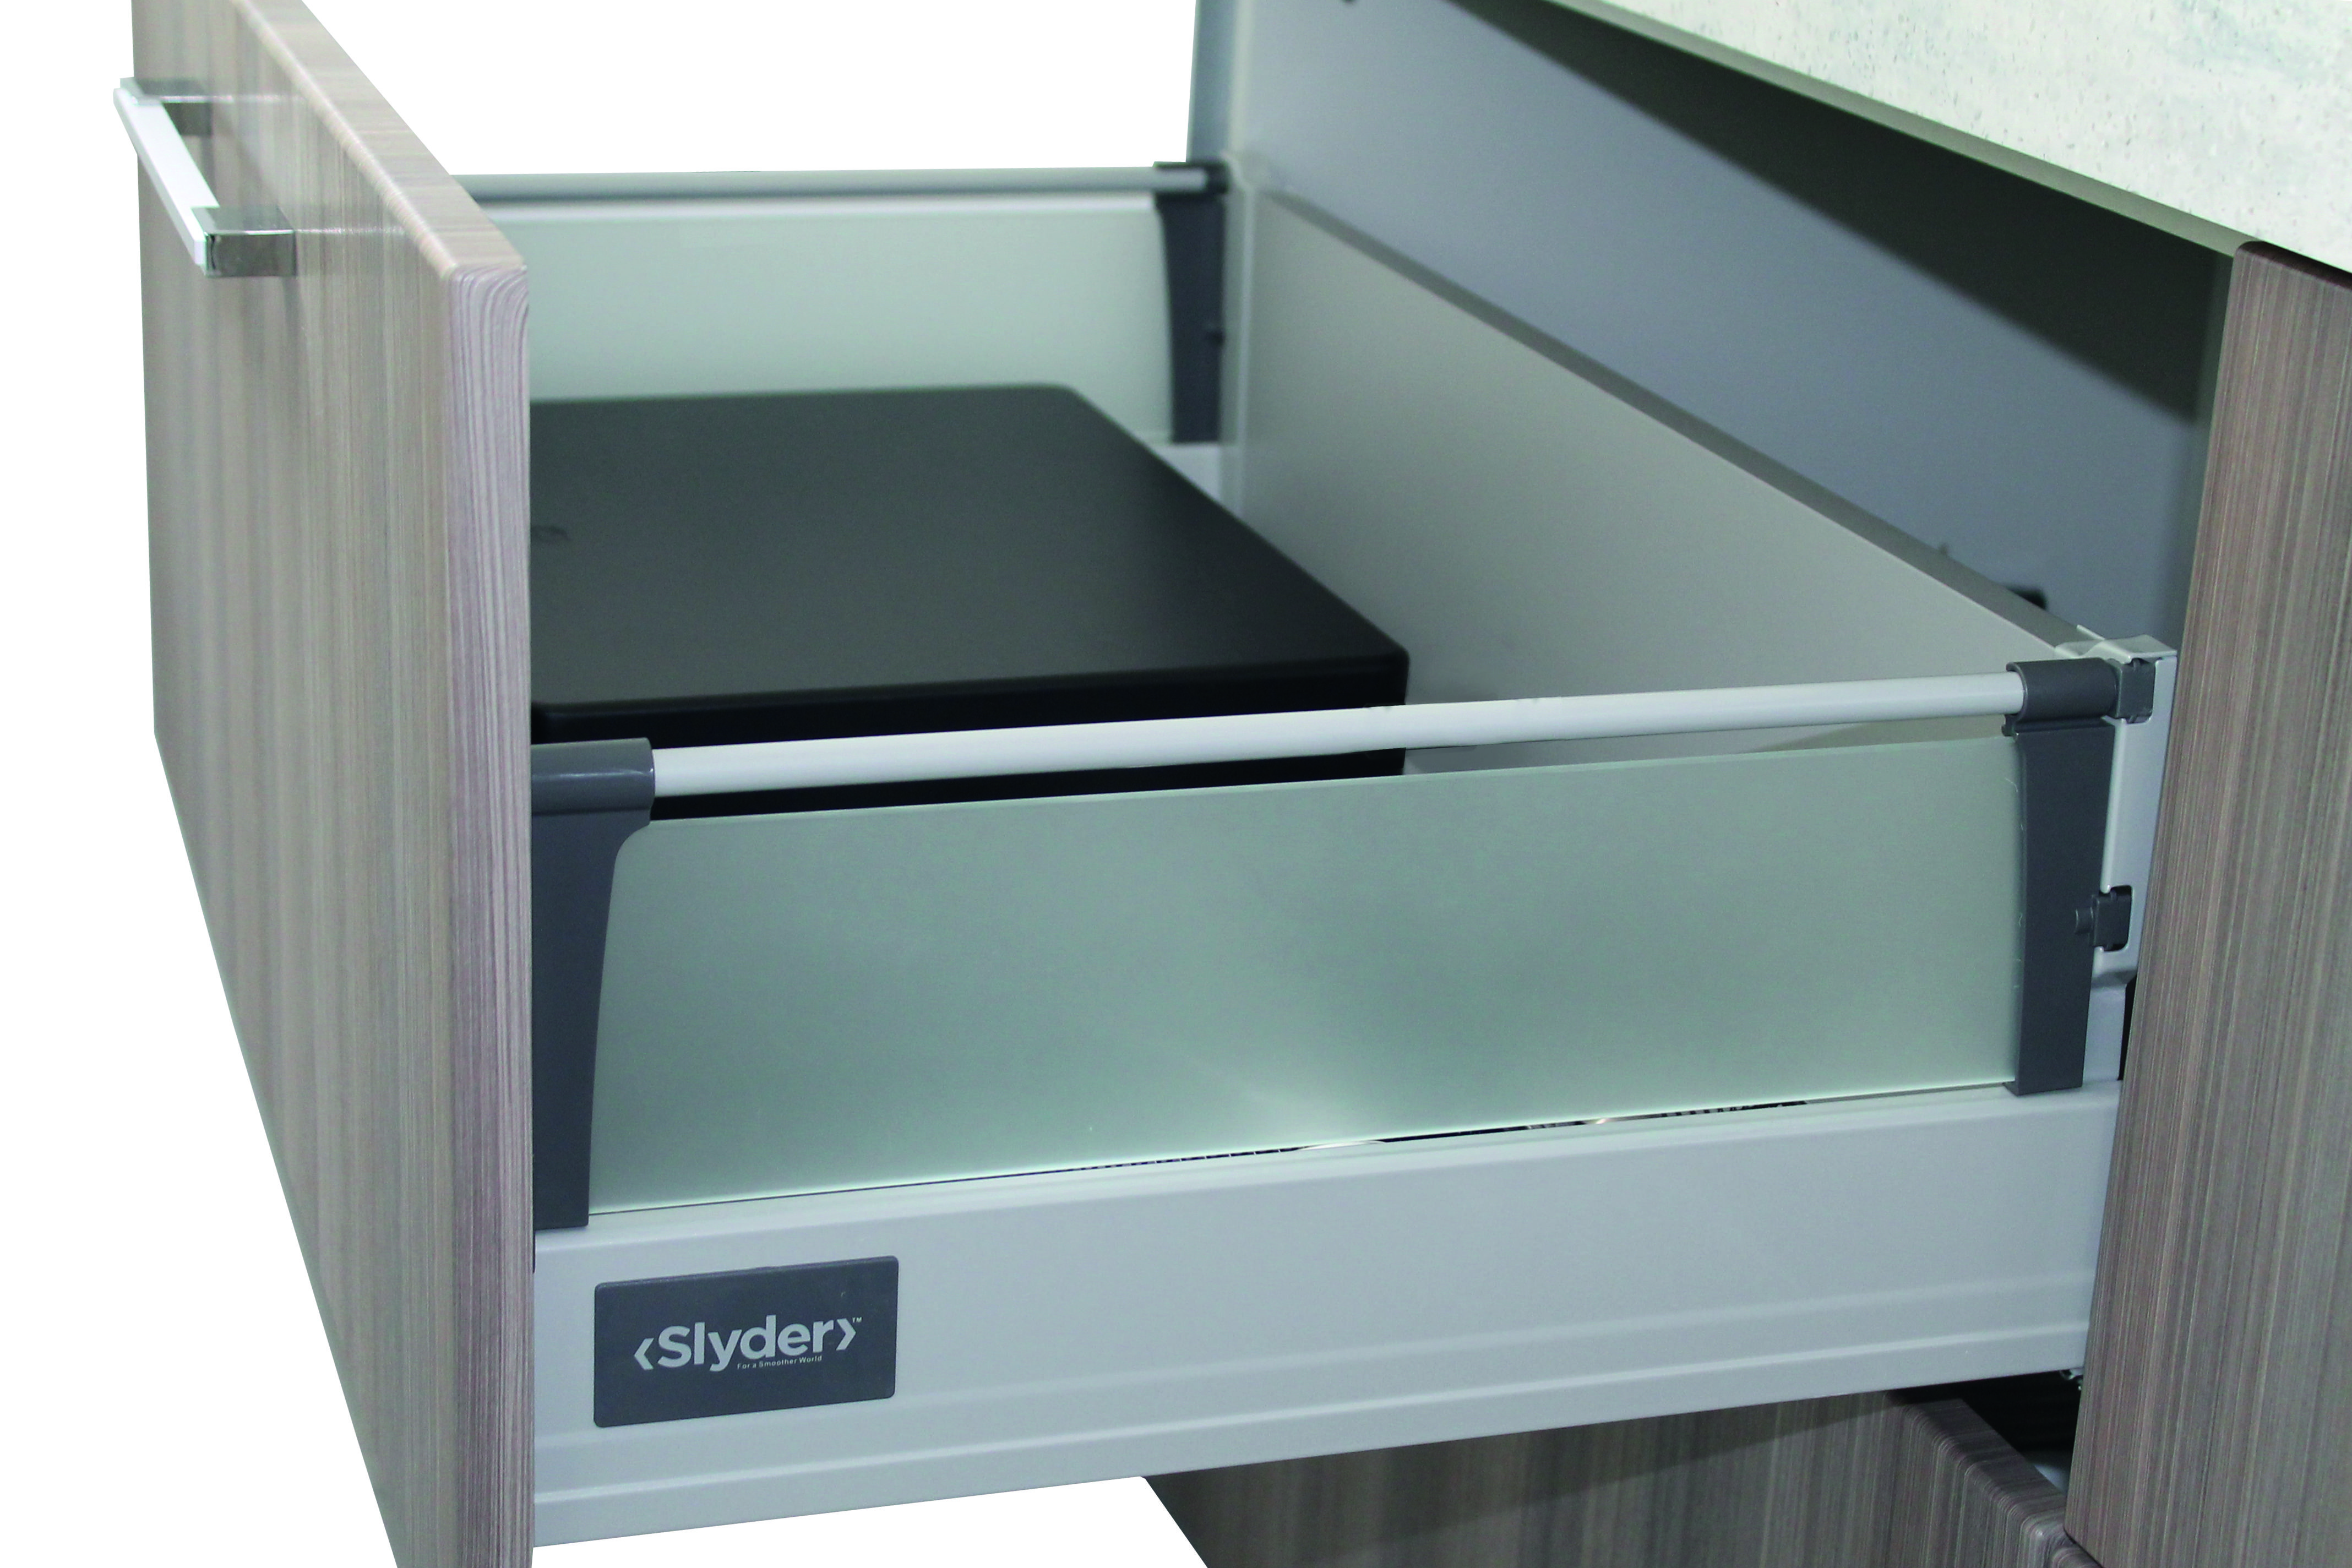 I075 Slyder Series - High Twin Wall Soft-Close Drawer Systems with ...